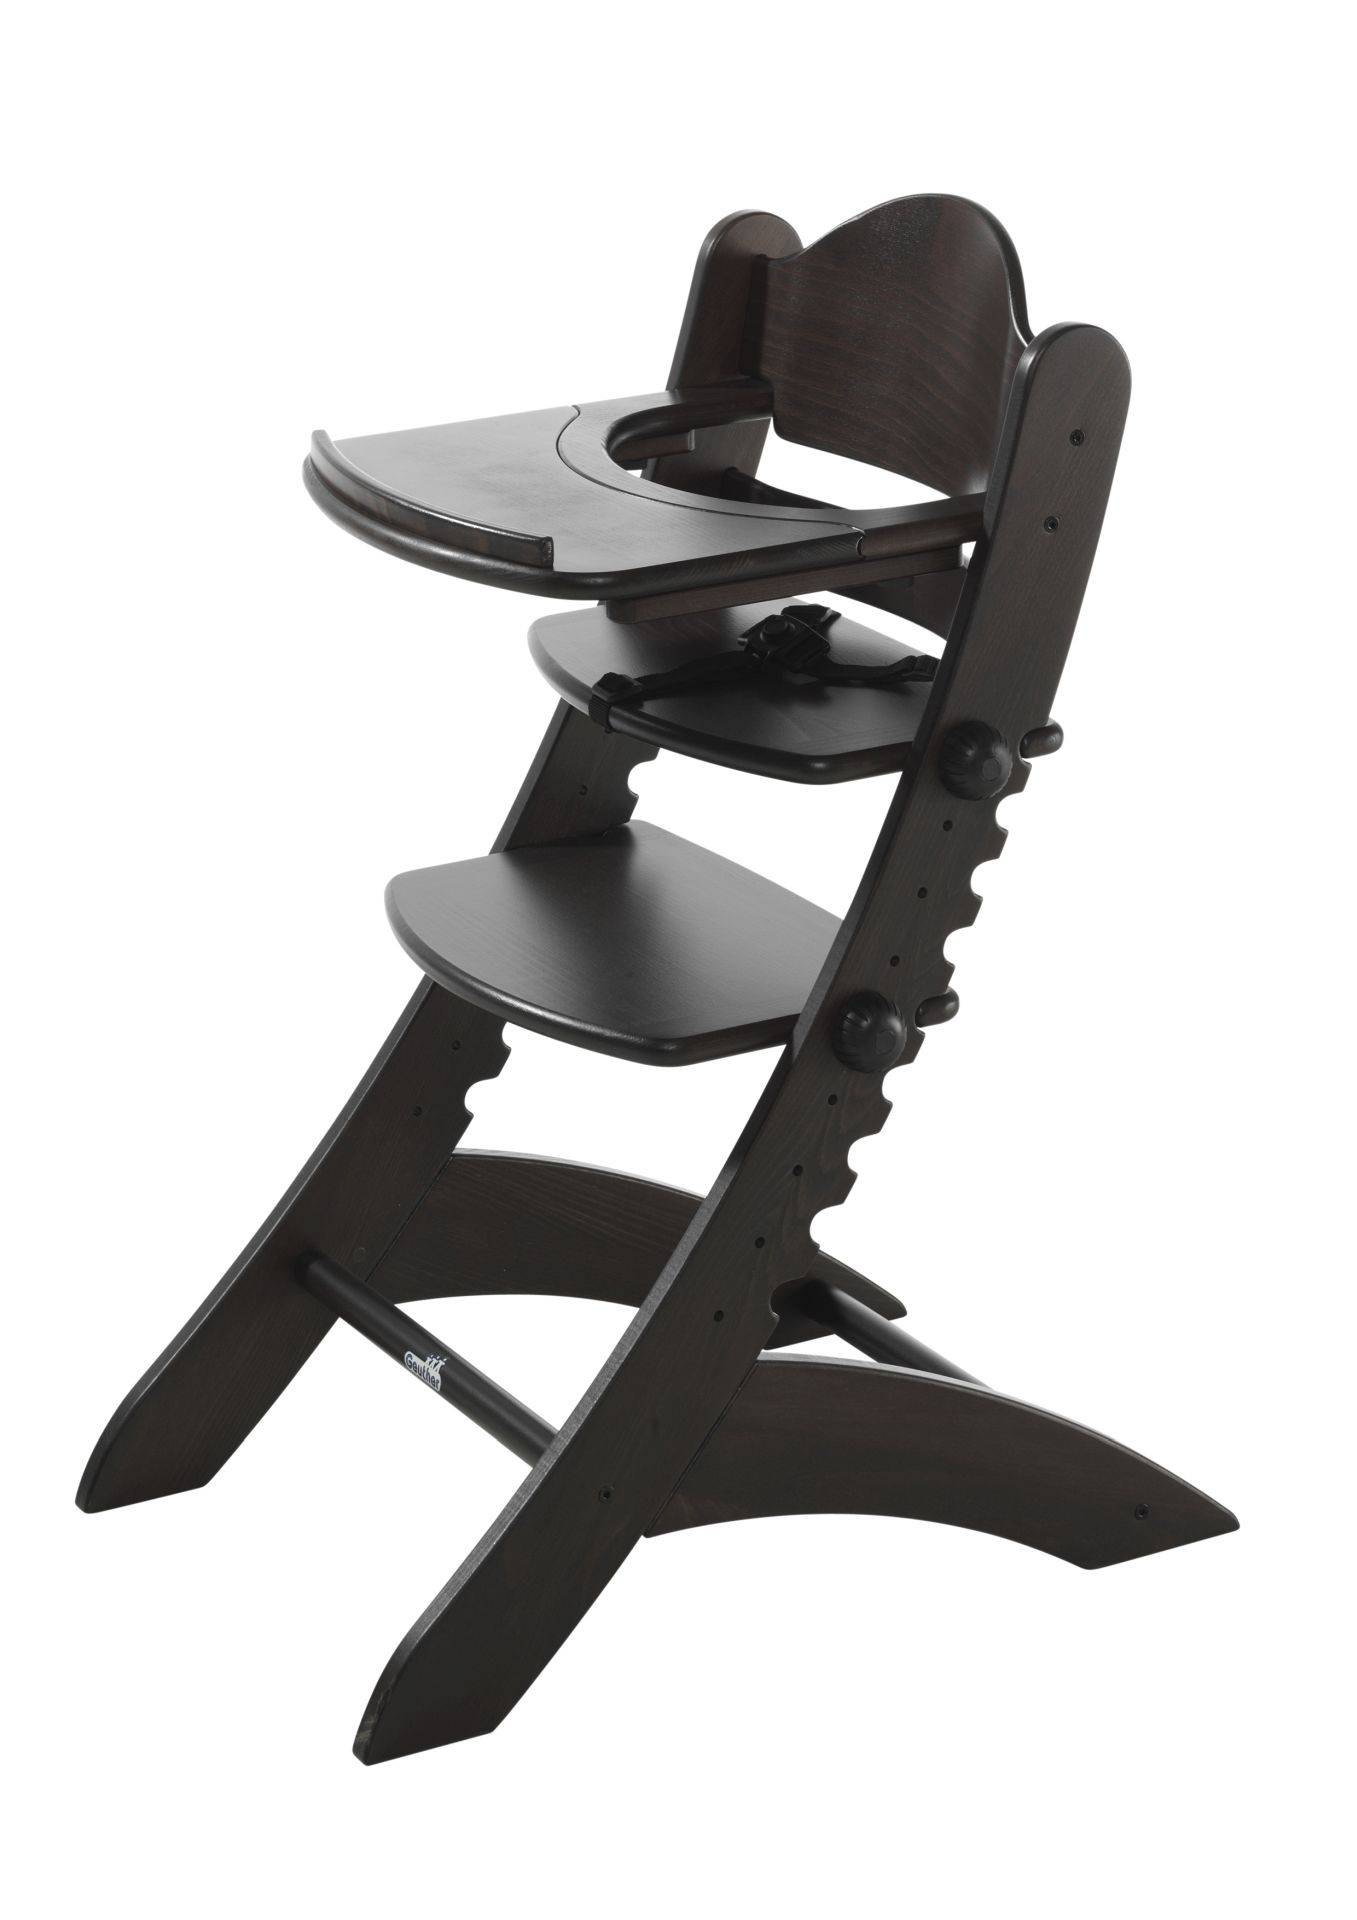 Geuther Swing highchair; Kolonial